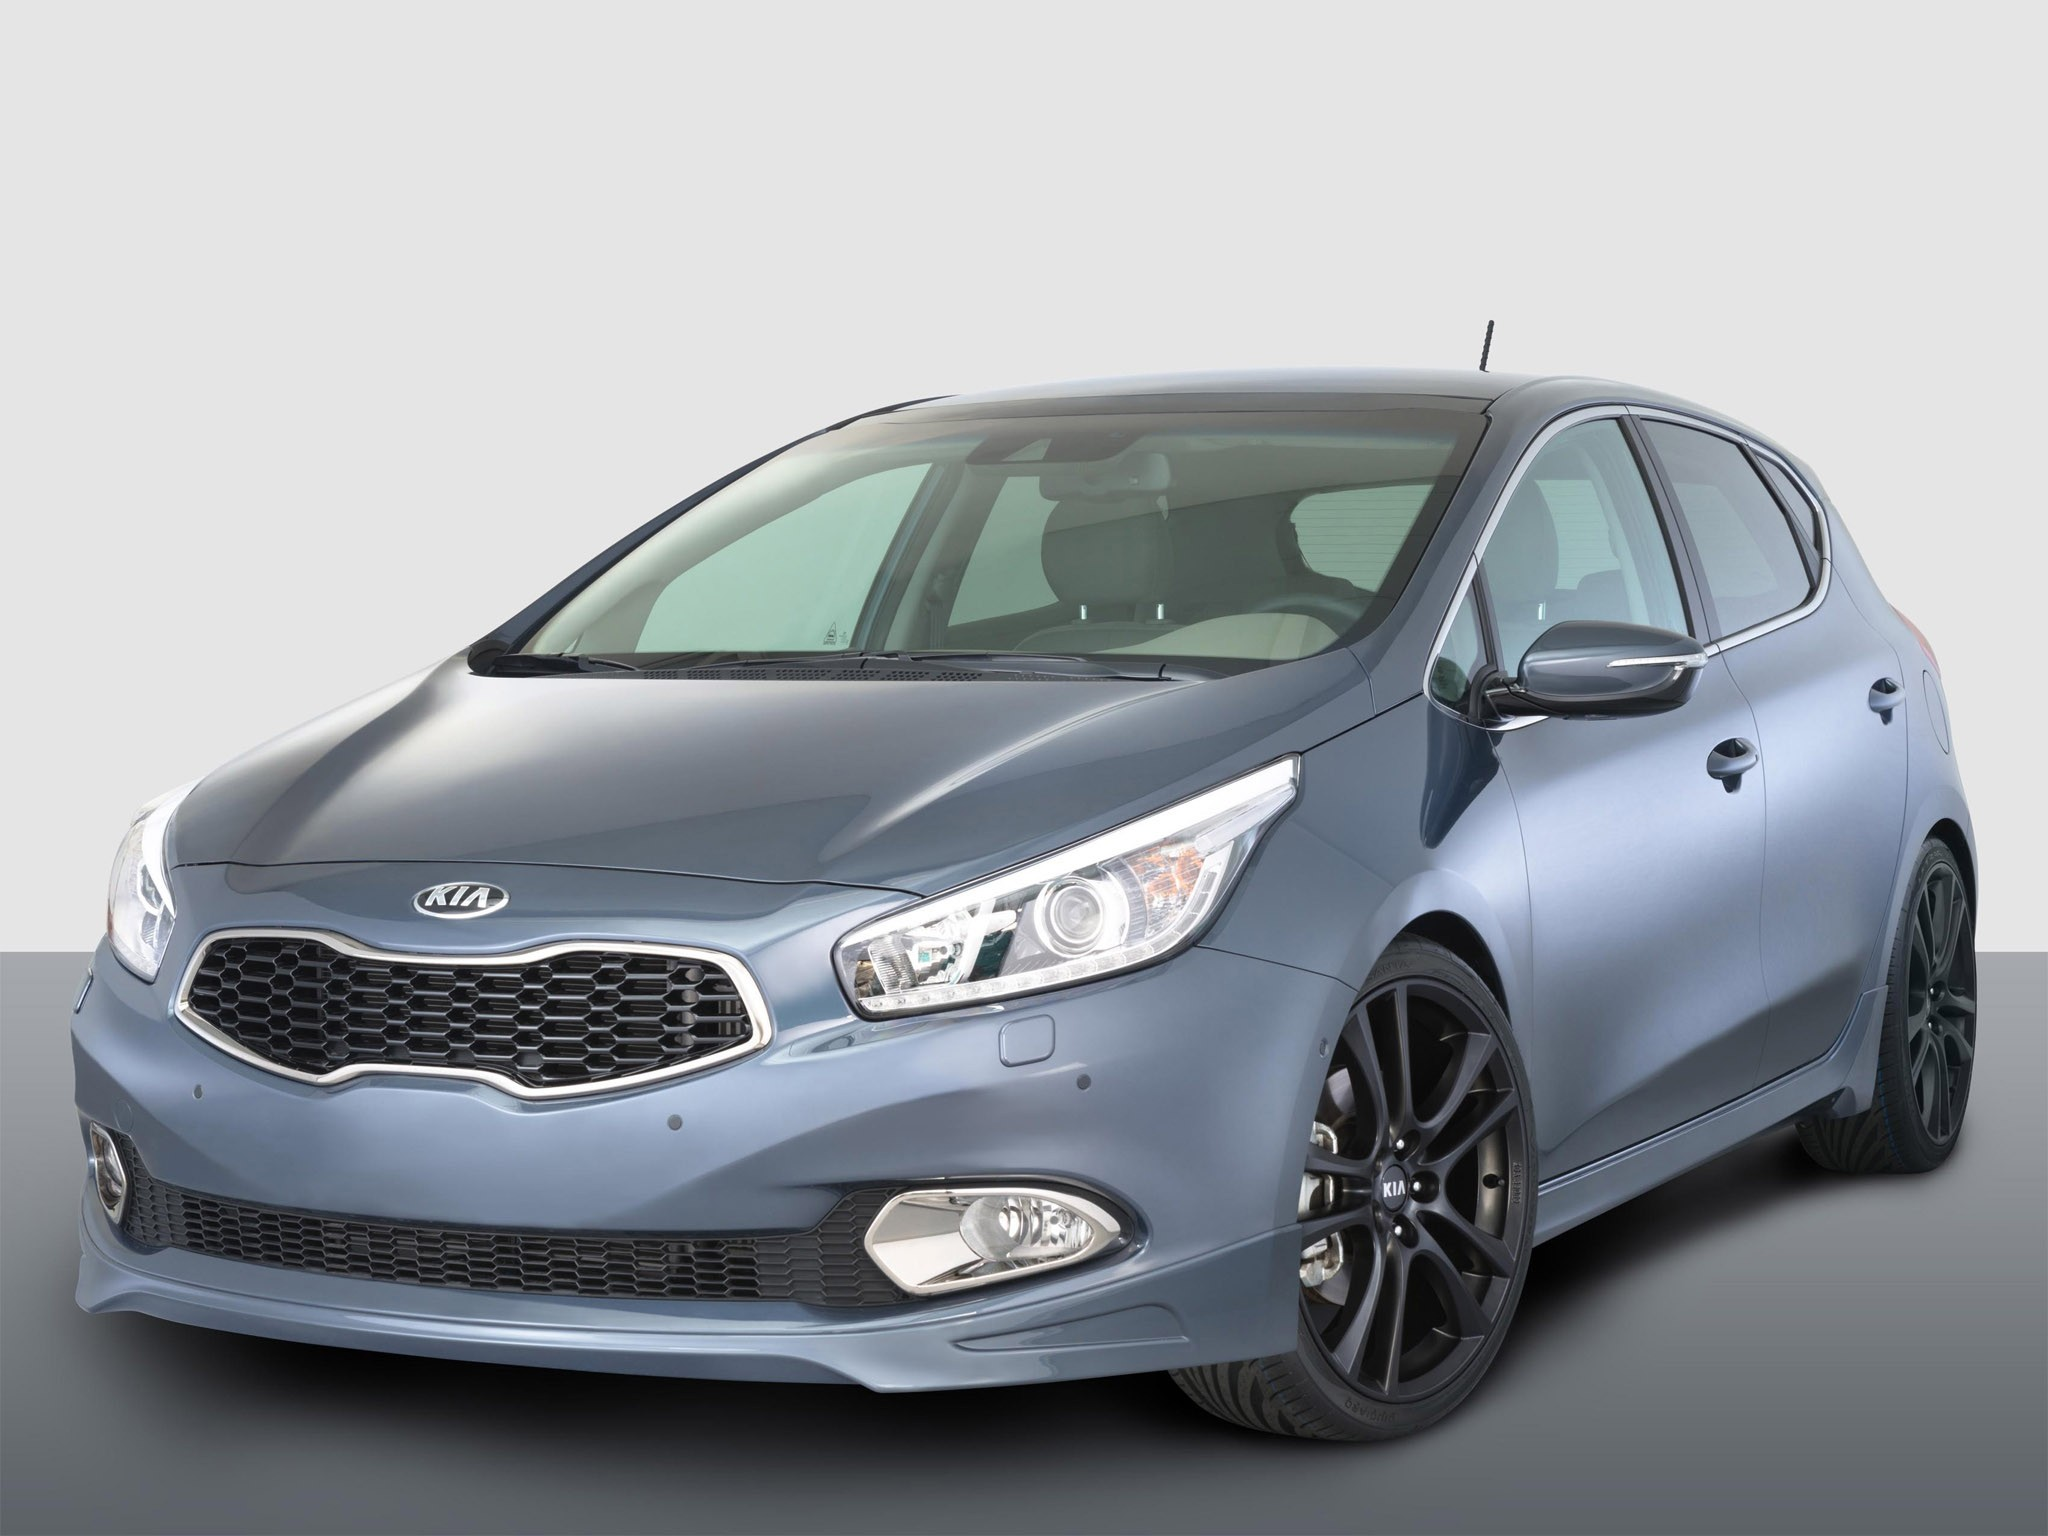 Kia Ceed 2012 by Irmscher